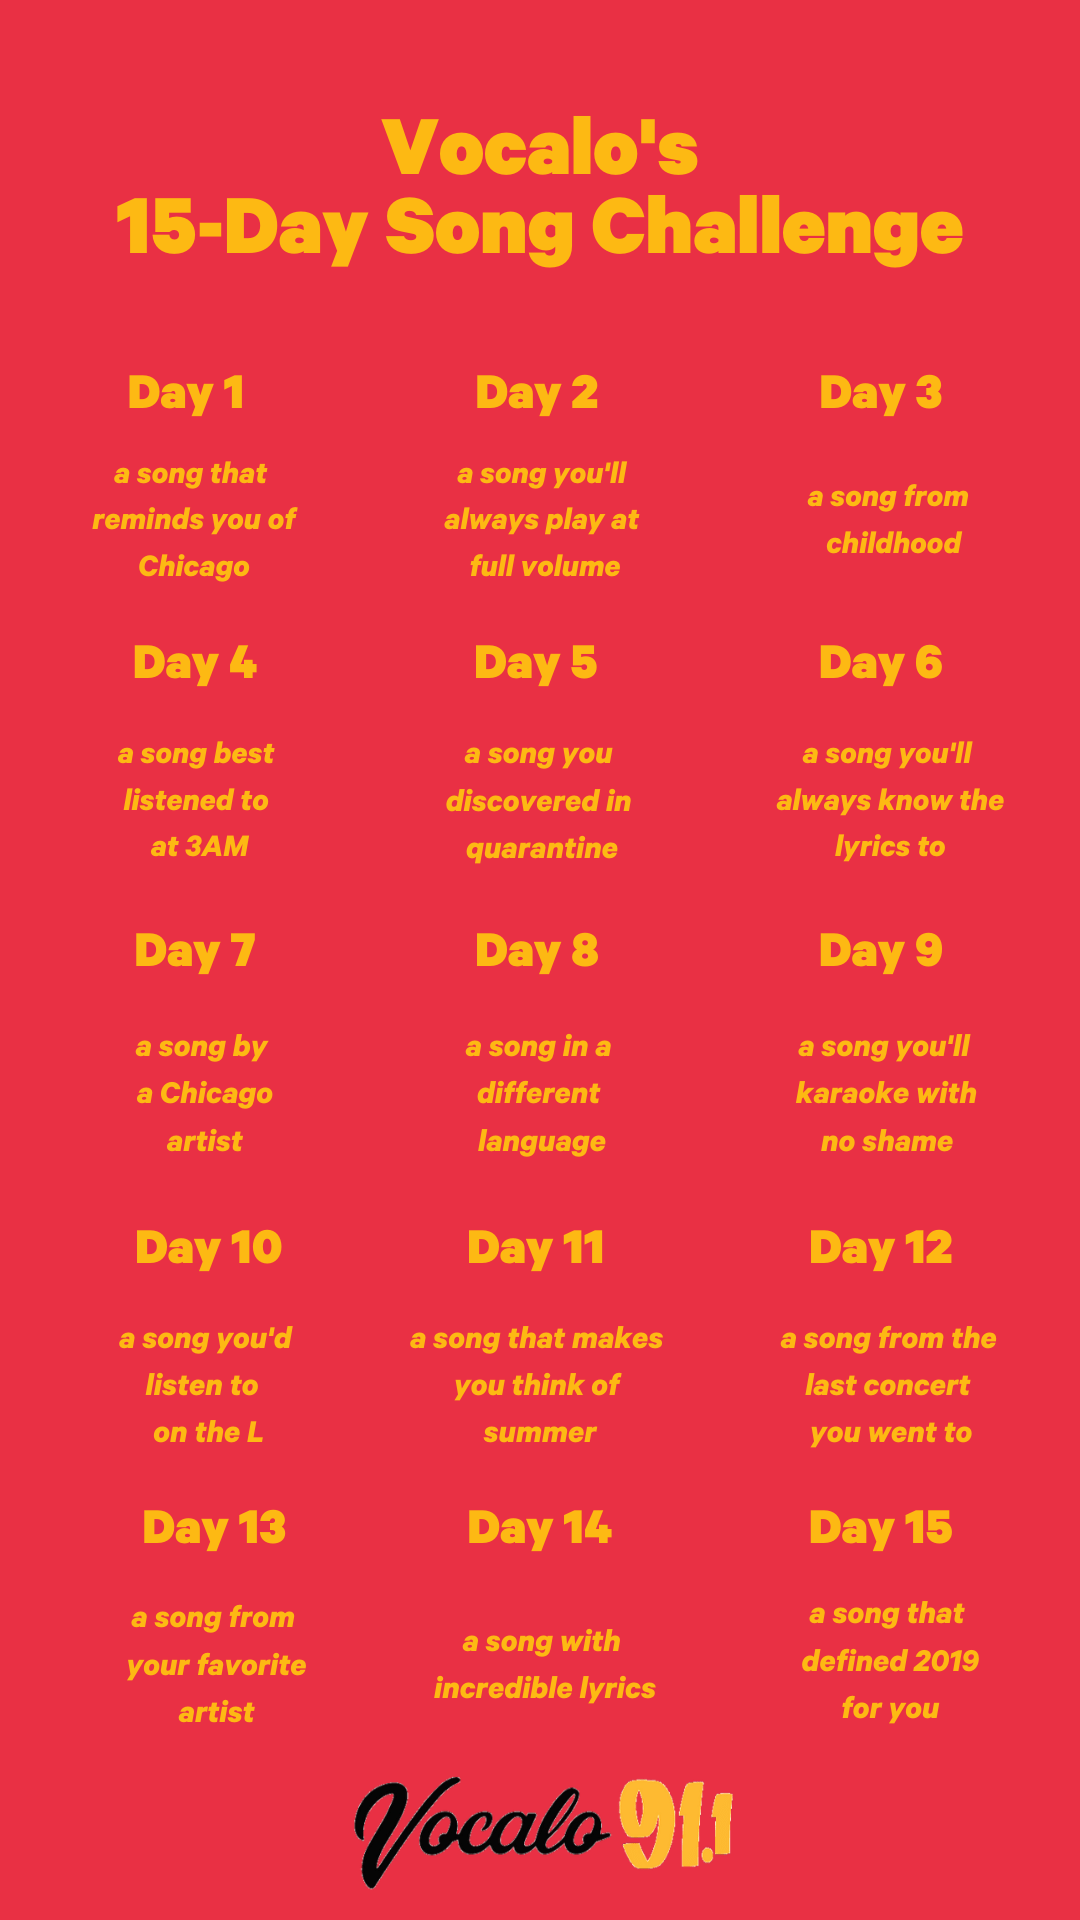 Vocalo's 15-Day Song Challenge